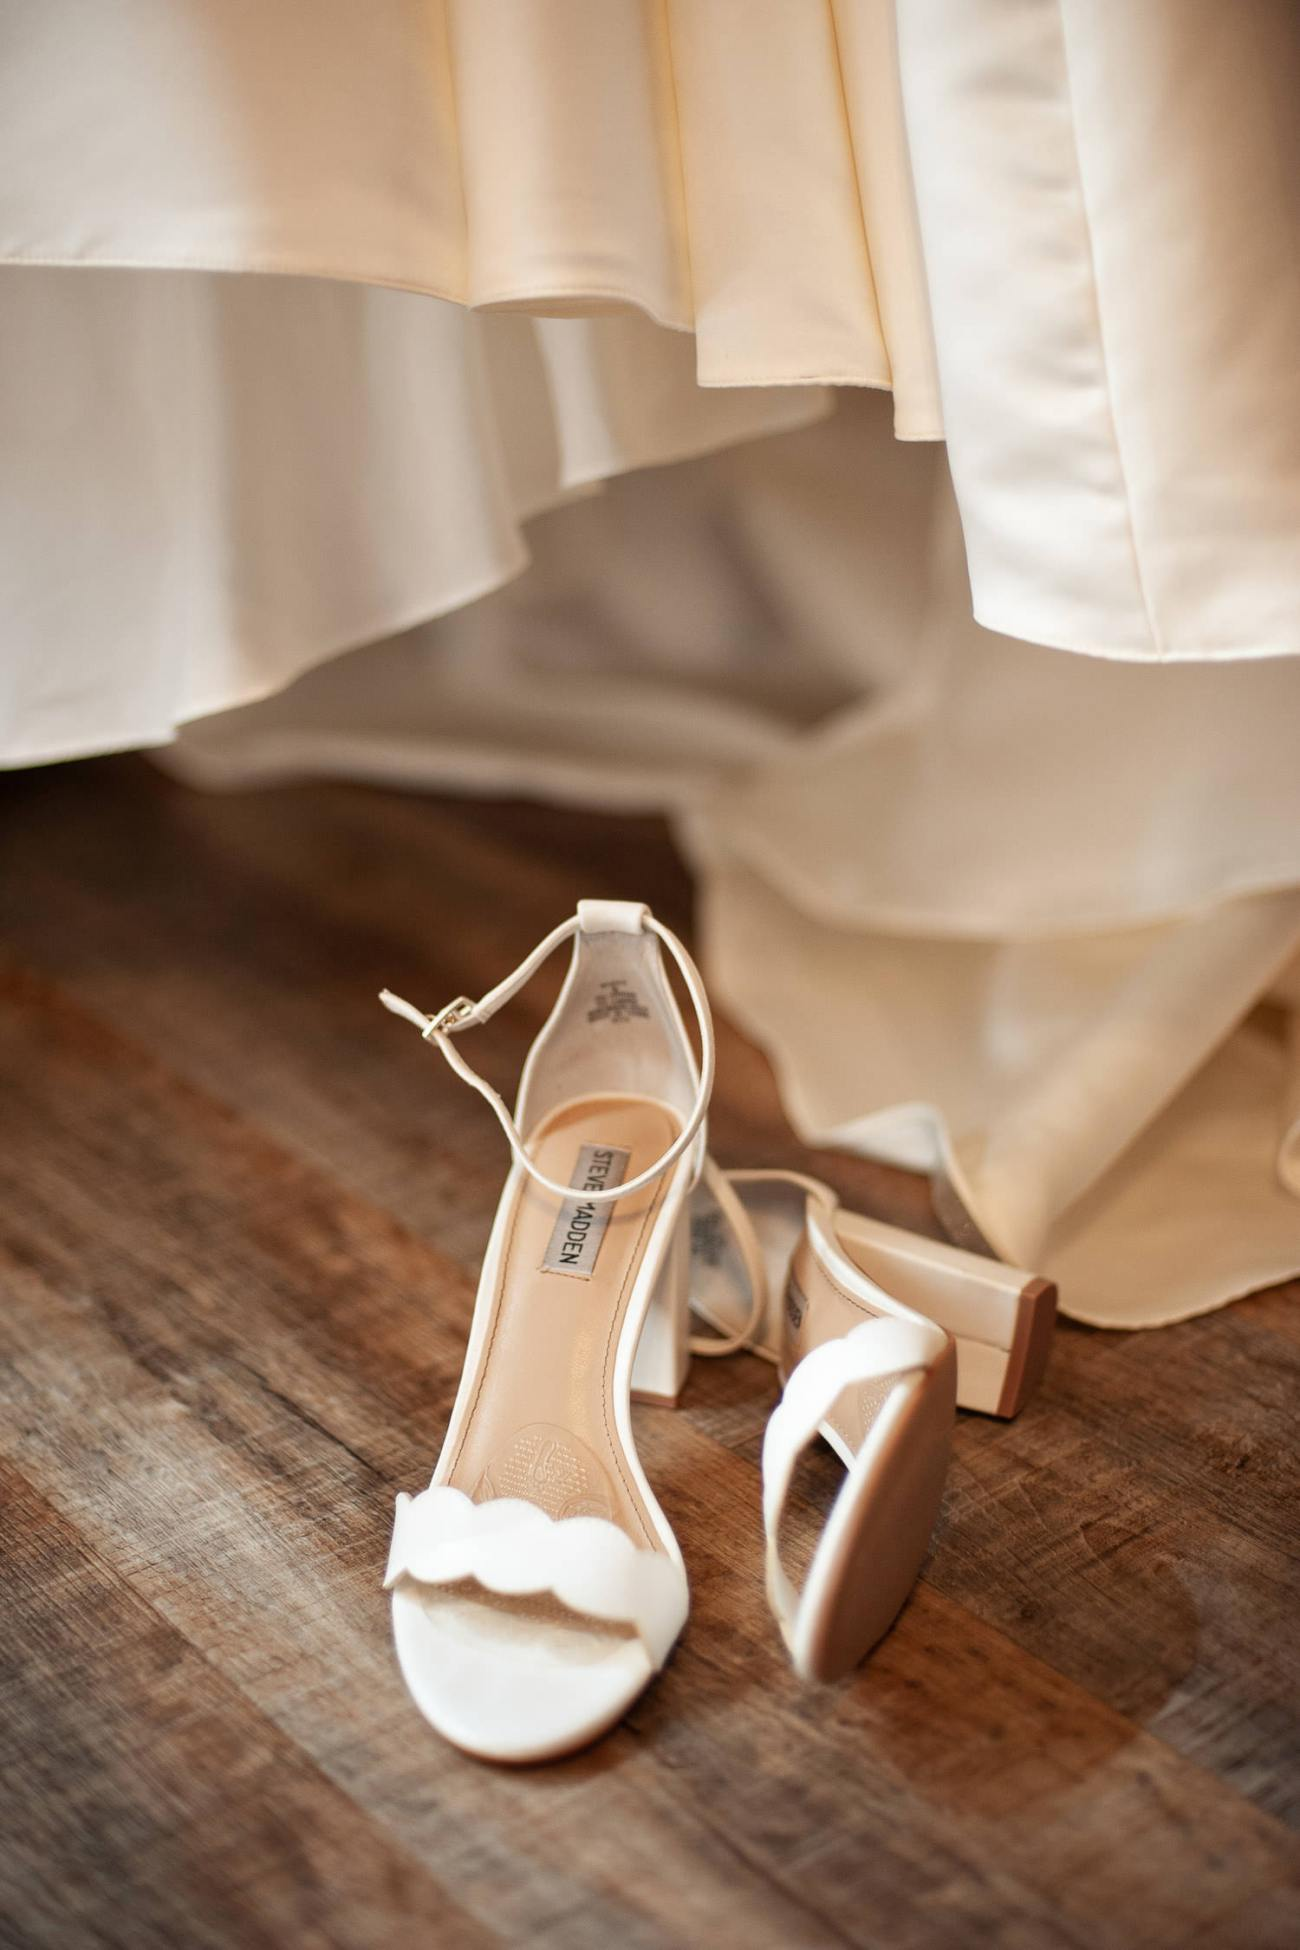 Bridal details before a Creekside Villa wedding captured by Tara Whittaker Photography